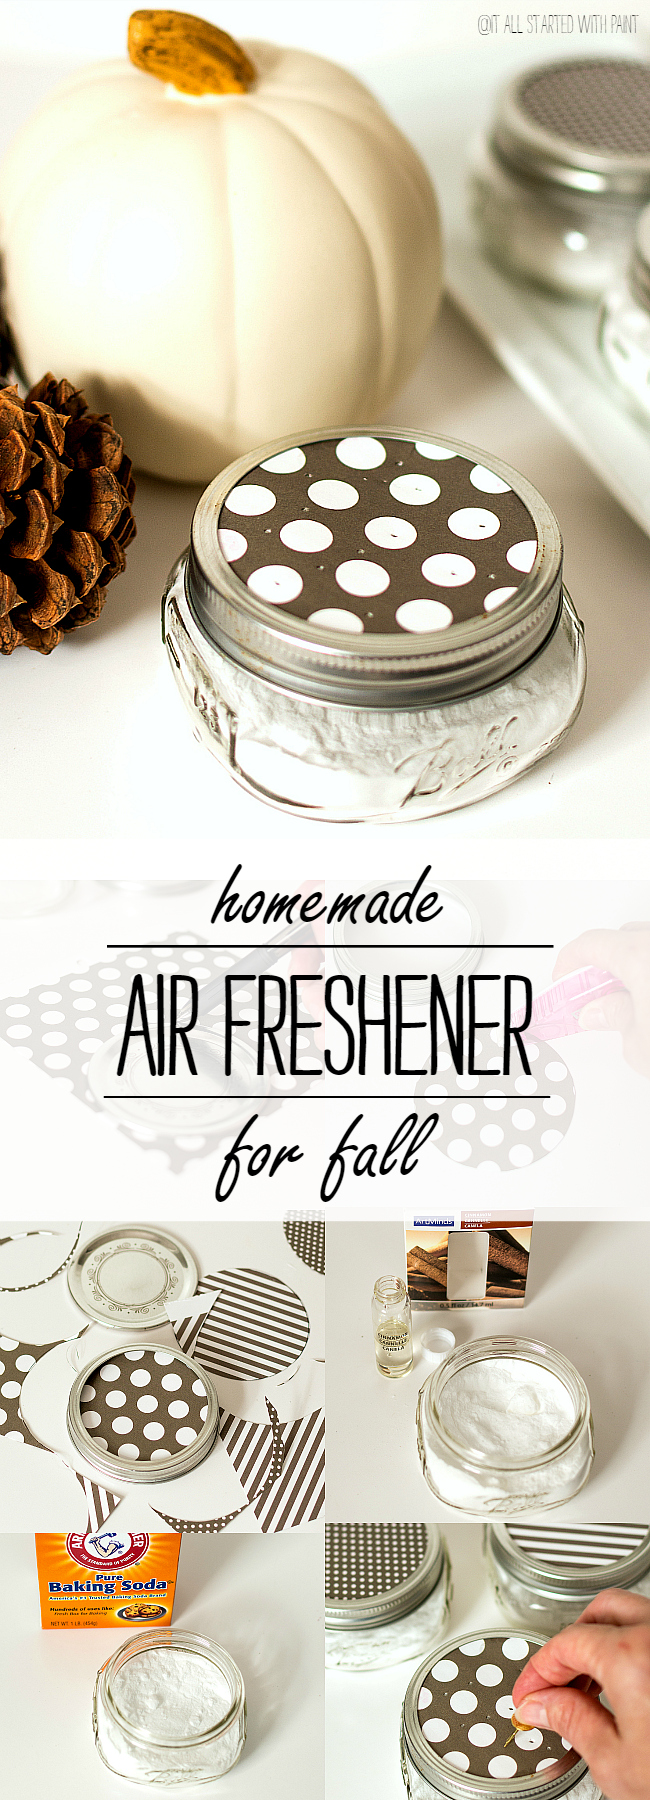 Homemade Air Freshener for Fall Scent